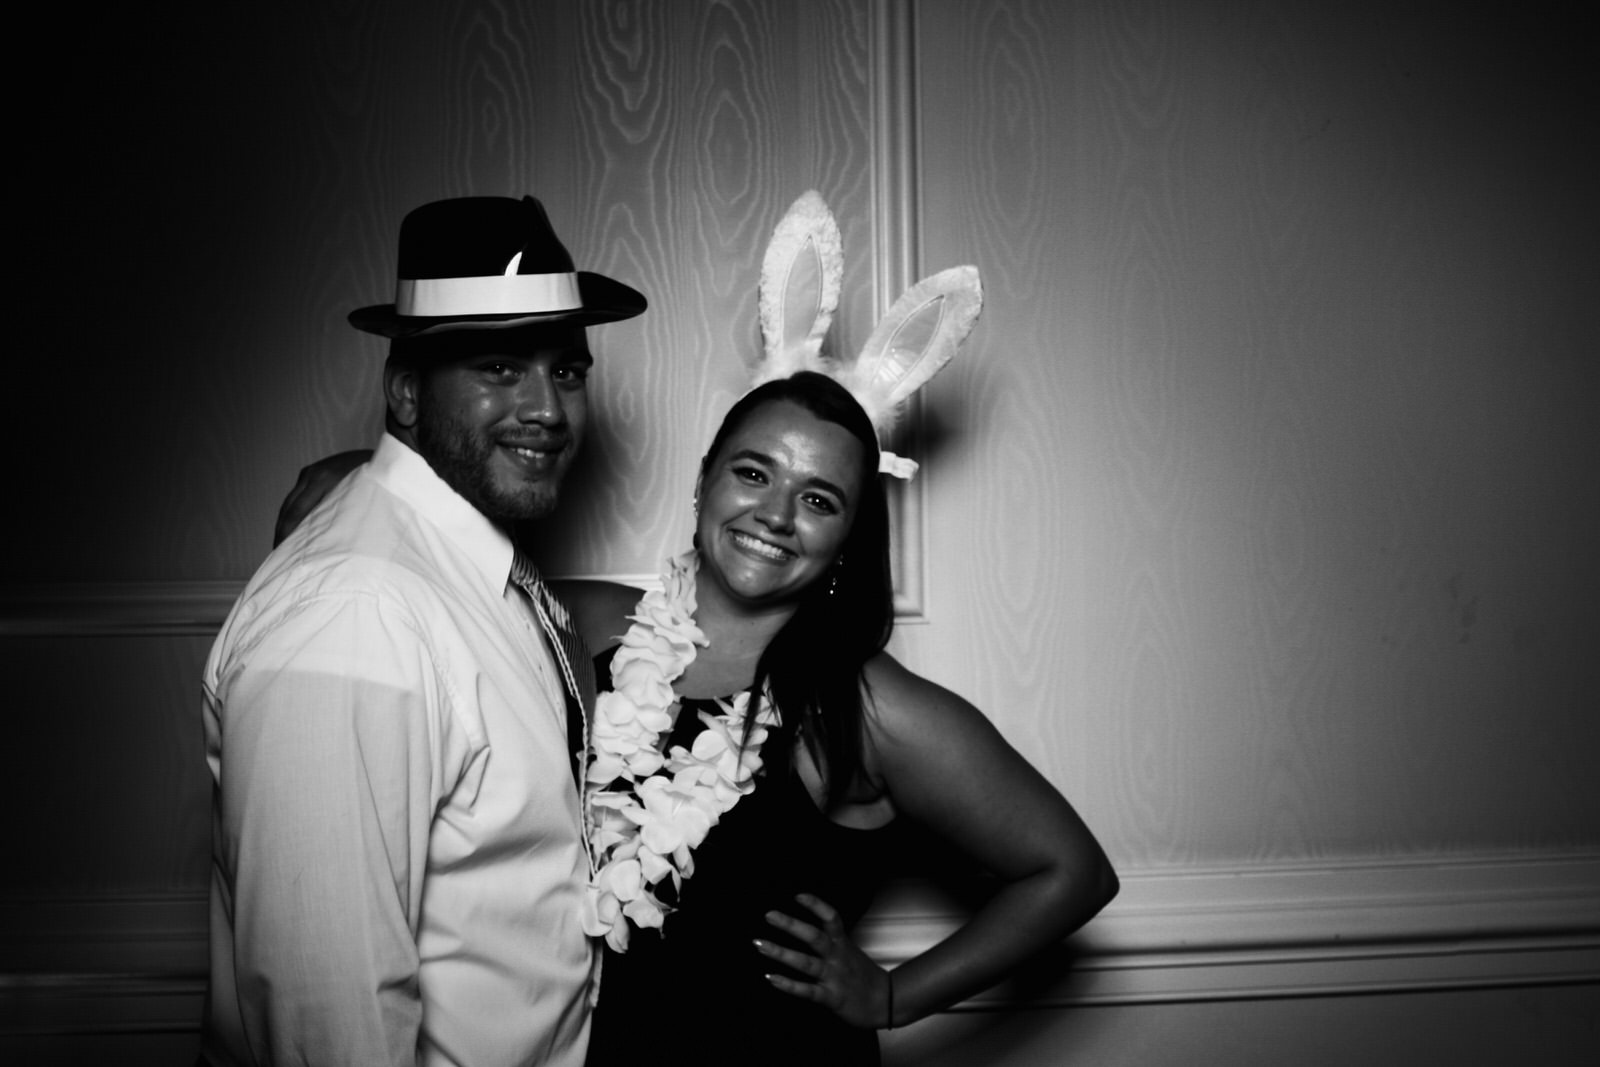 Ashley-Tyrone-Wedding-Photo-Booth-Presidential_Norristown-Wedding-18.jpg